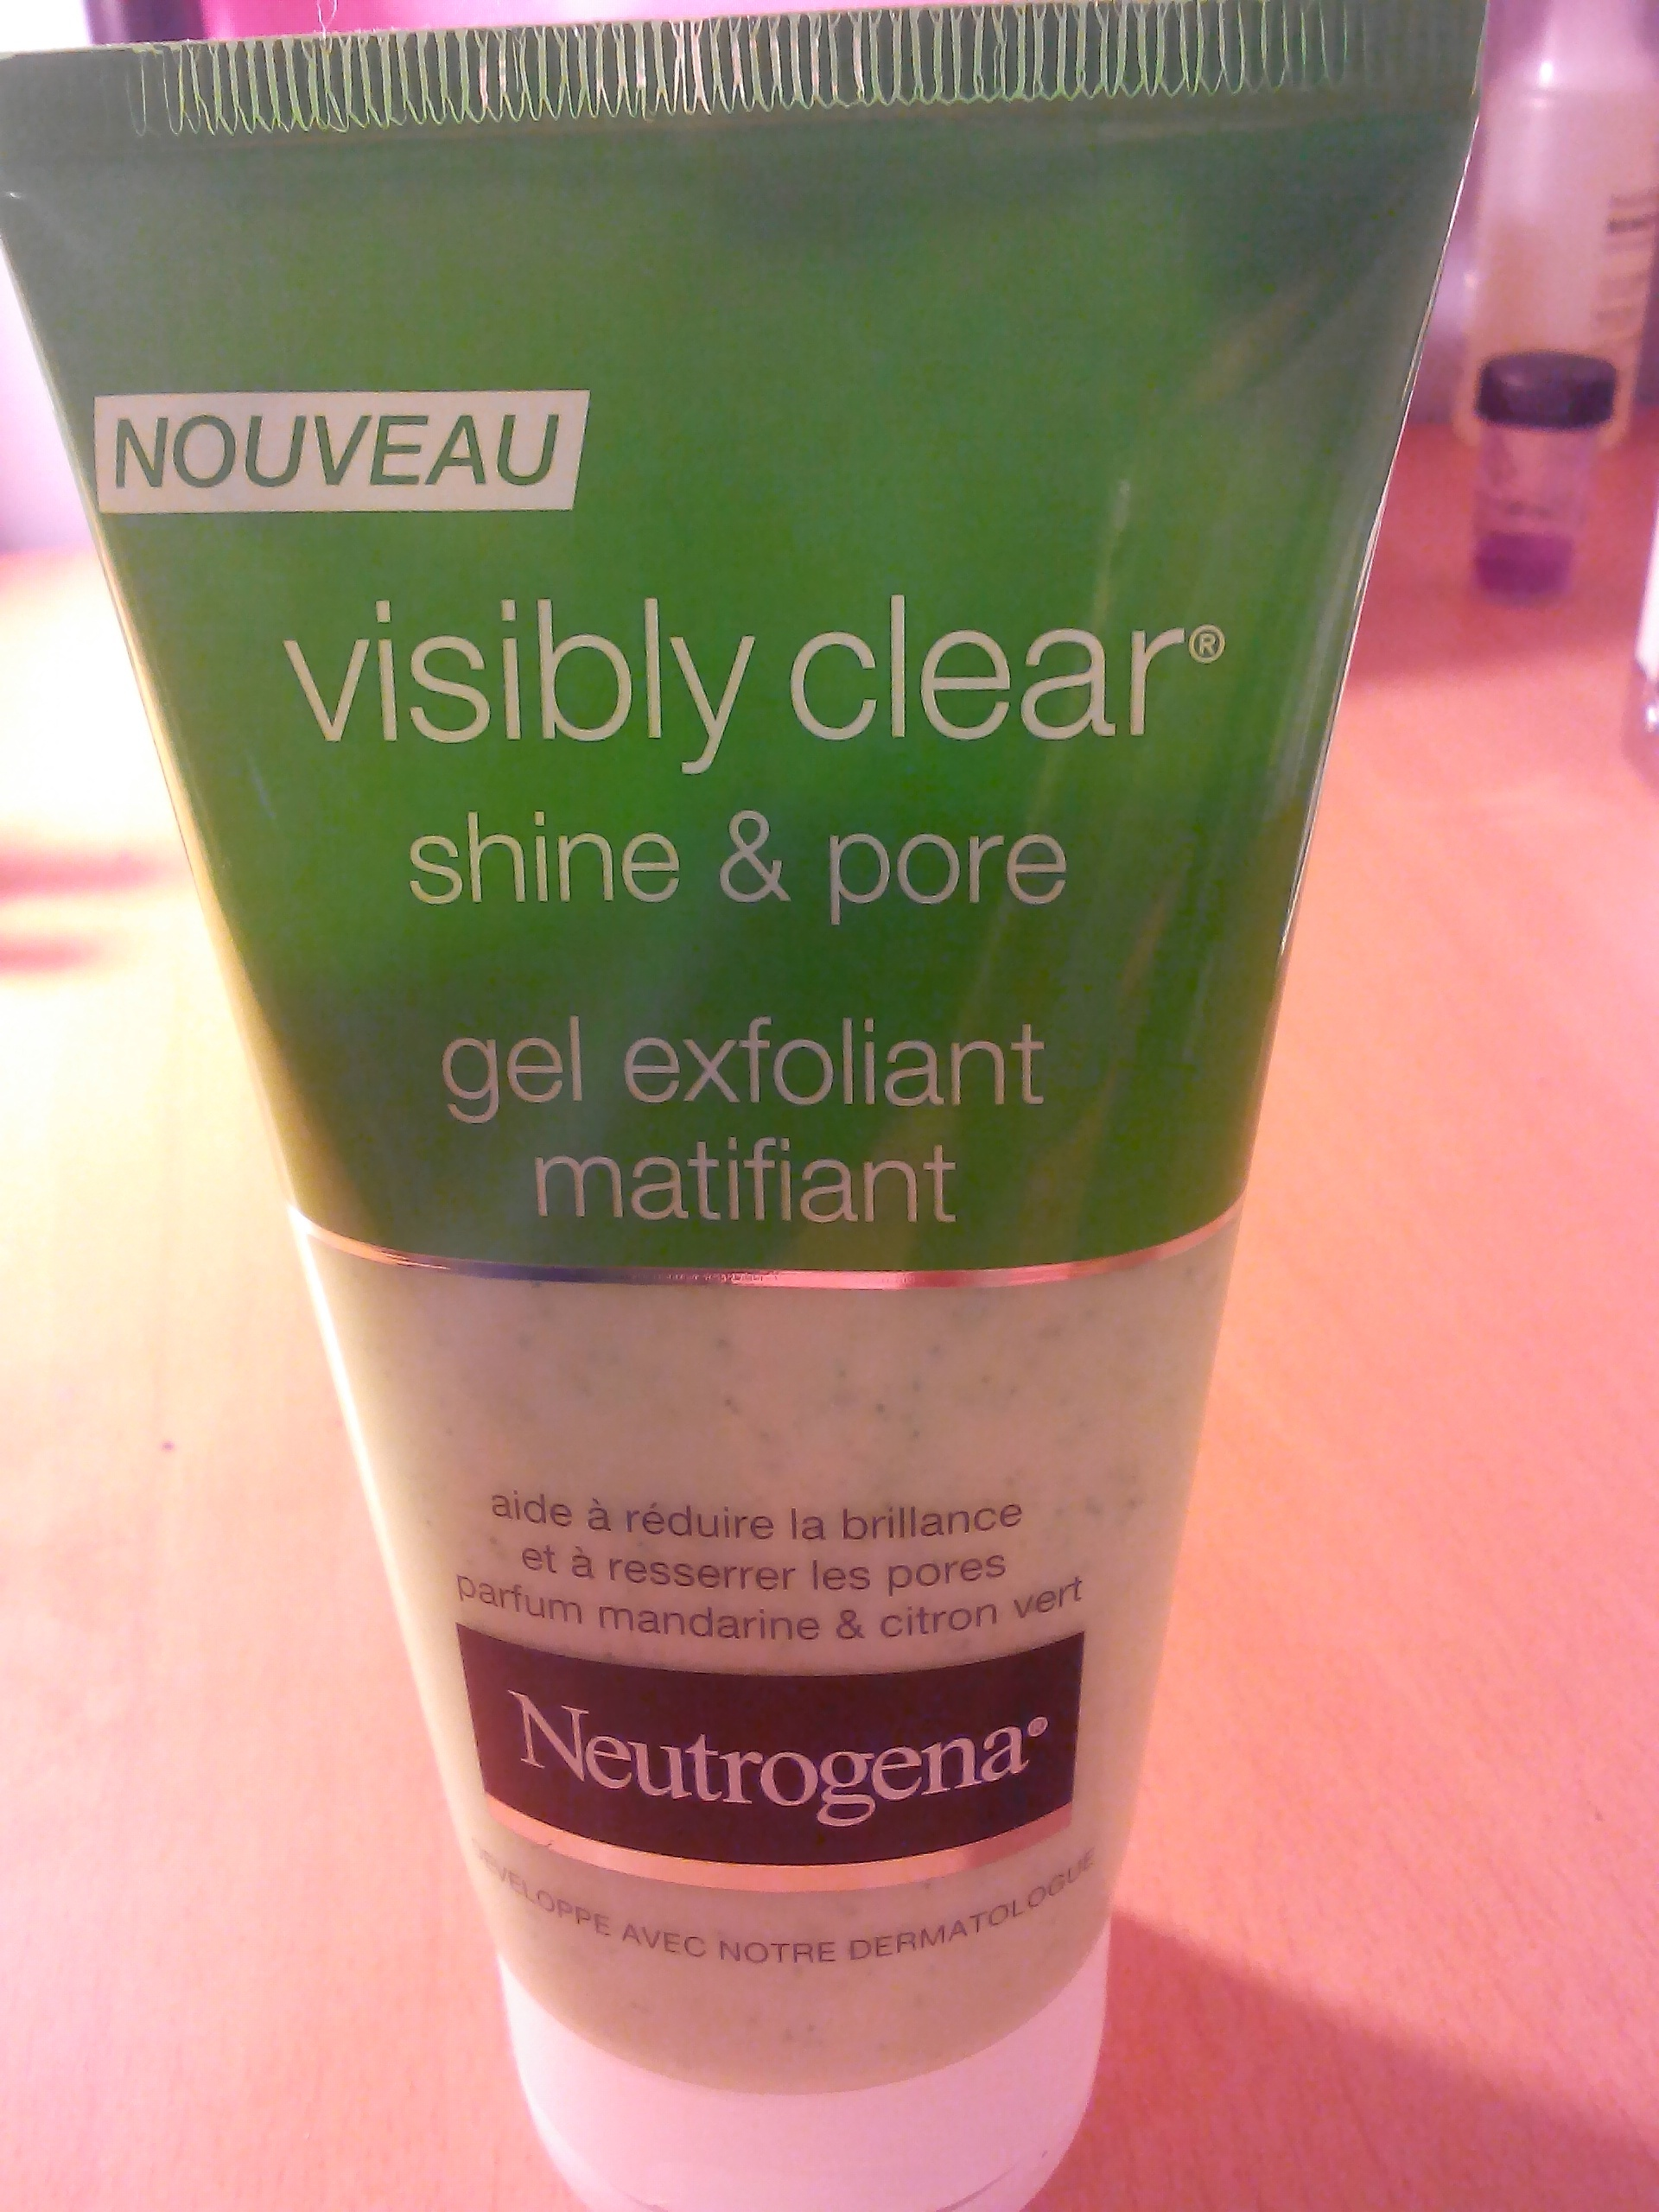 Gel Exfoliant Matifiant - Visibly Clear shine & pore